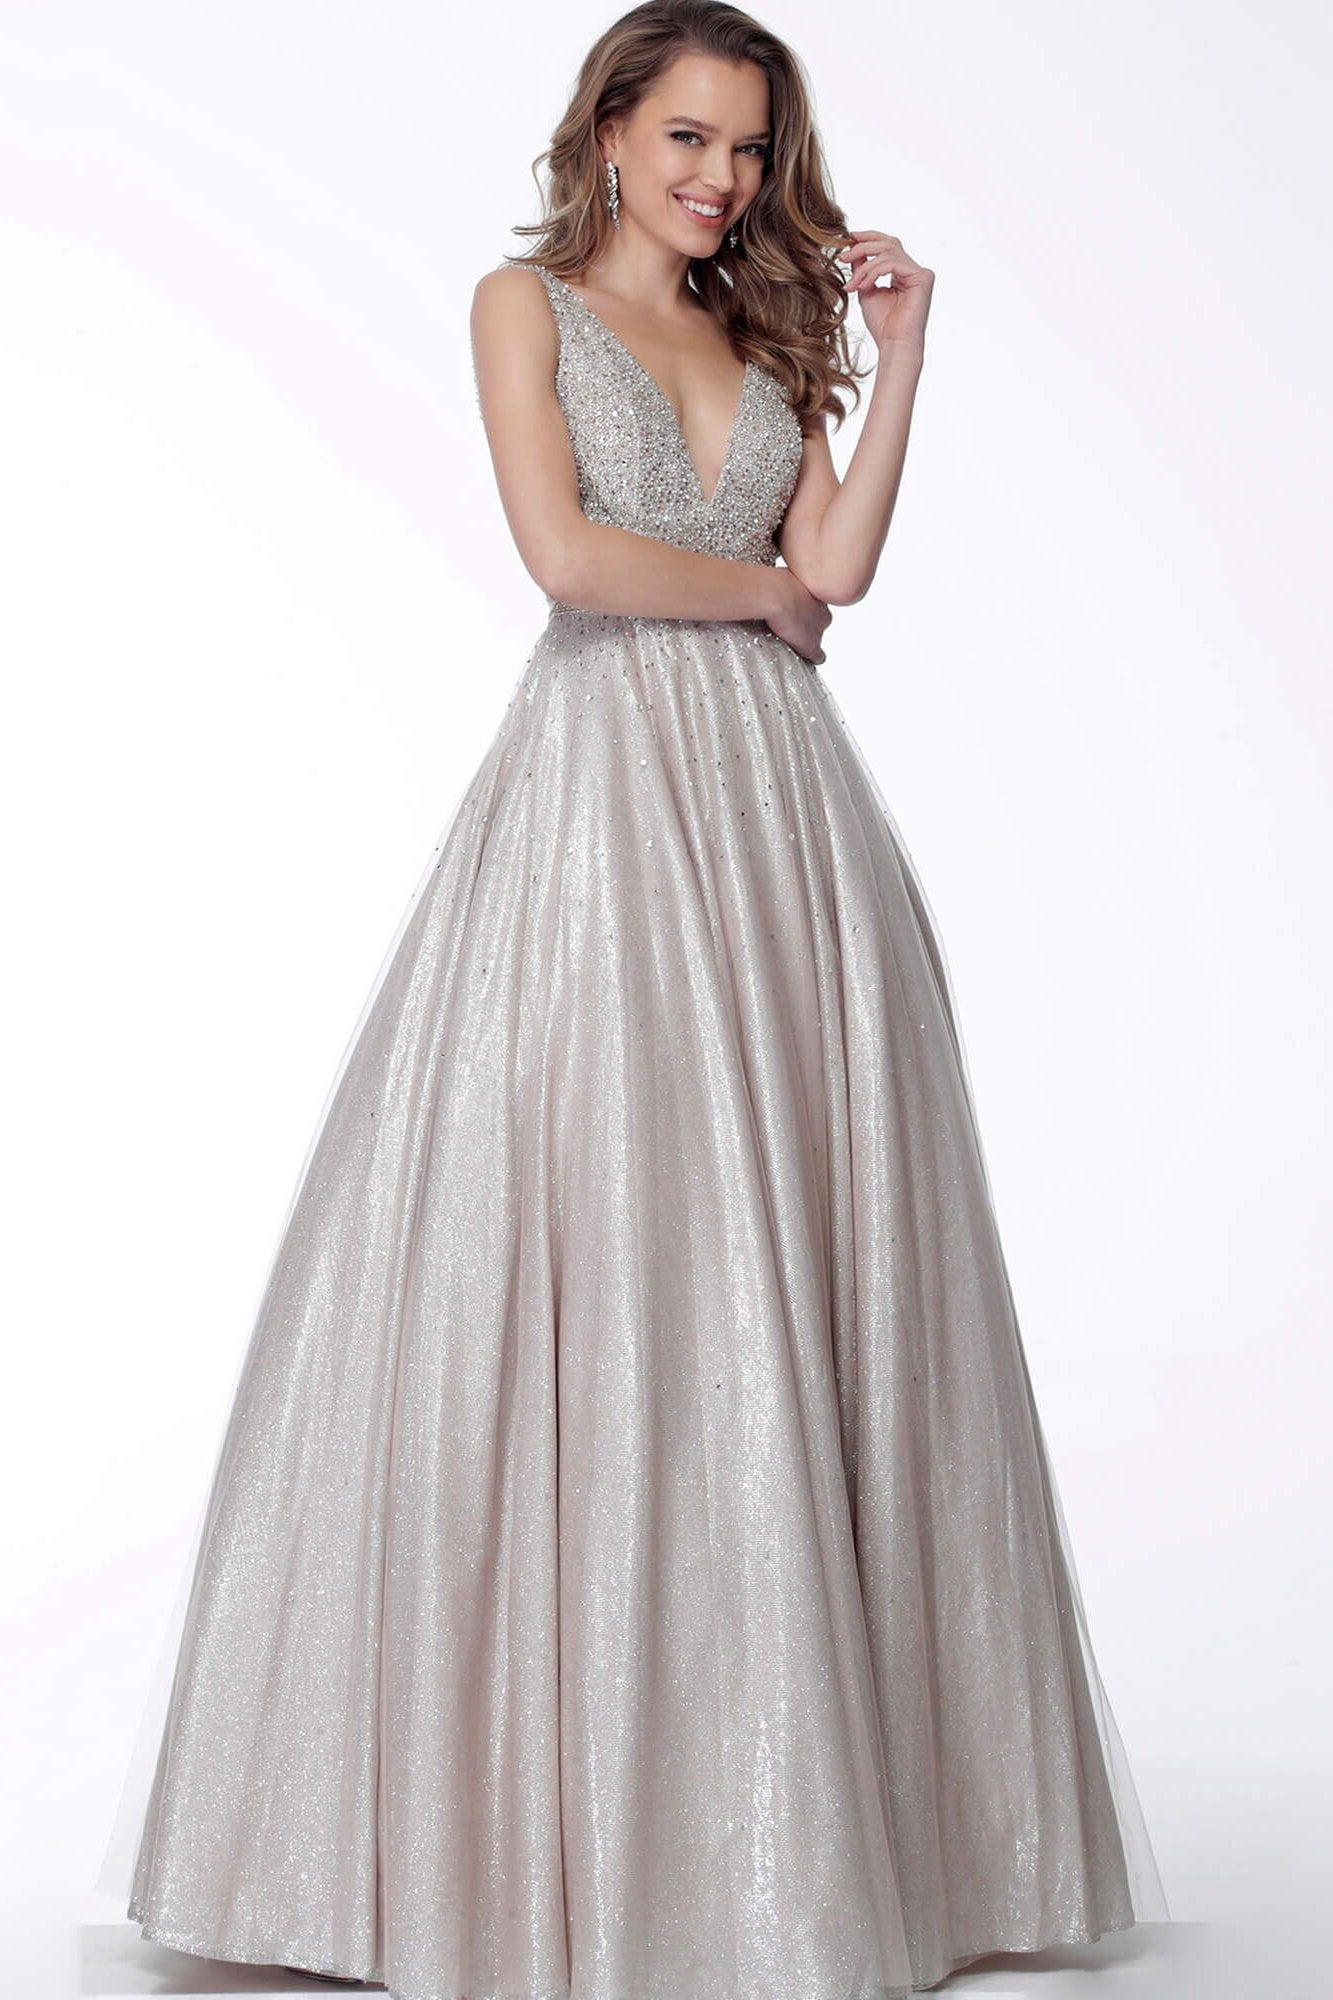 Jovani - 66863 V-Neck and Back Glittered A-line Dress In Gray and Silver